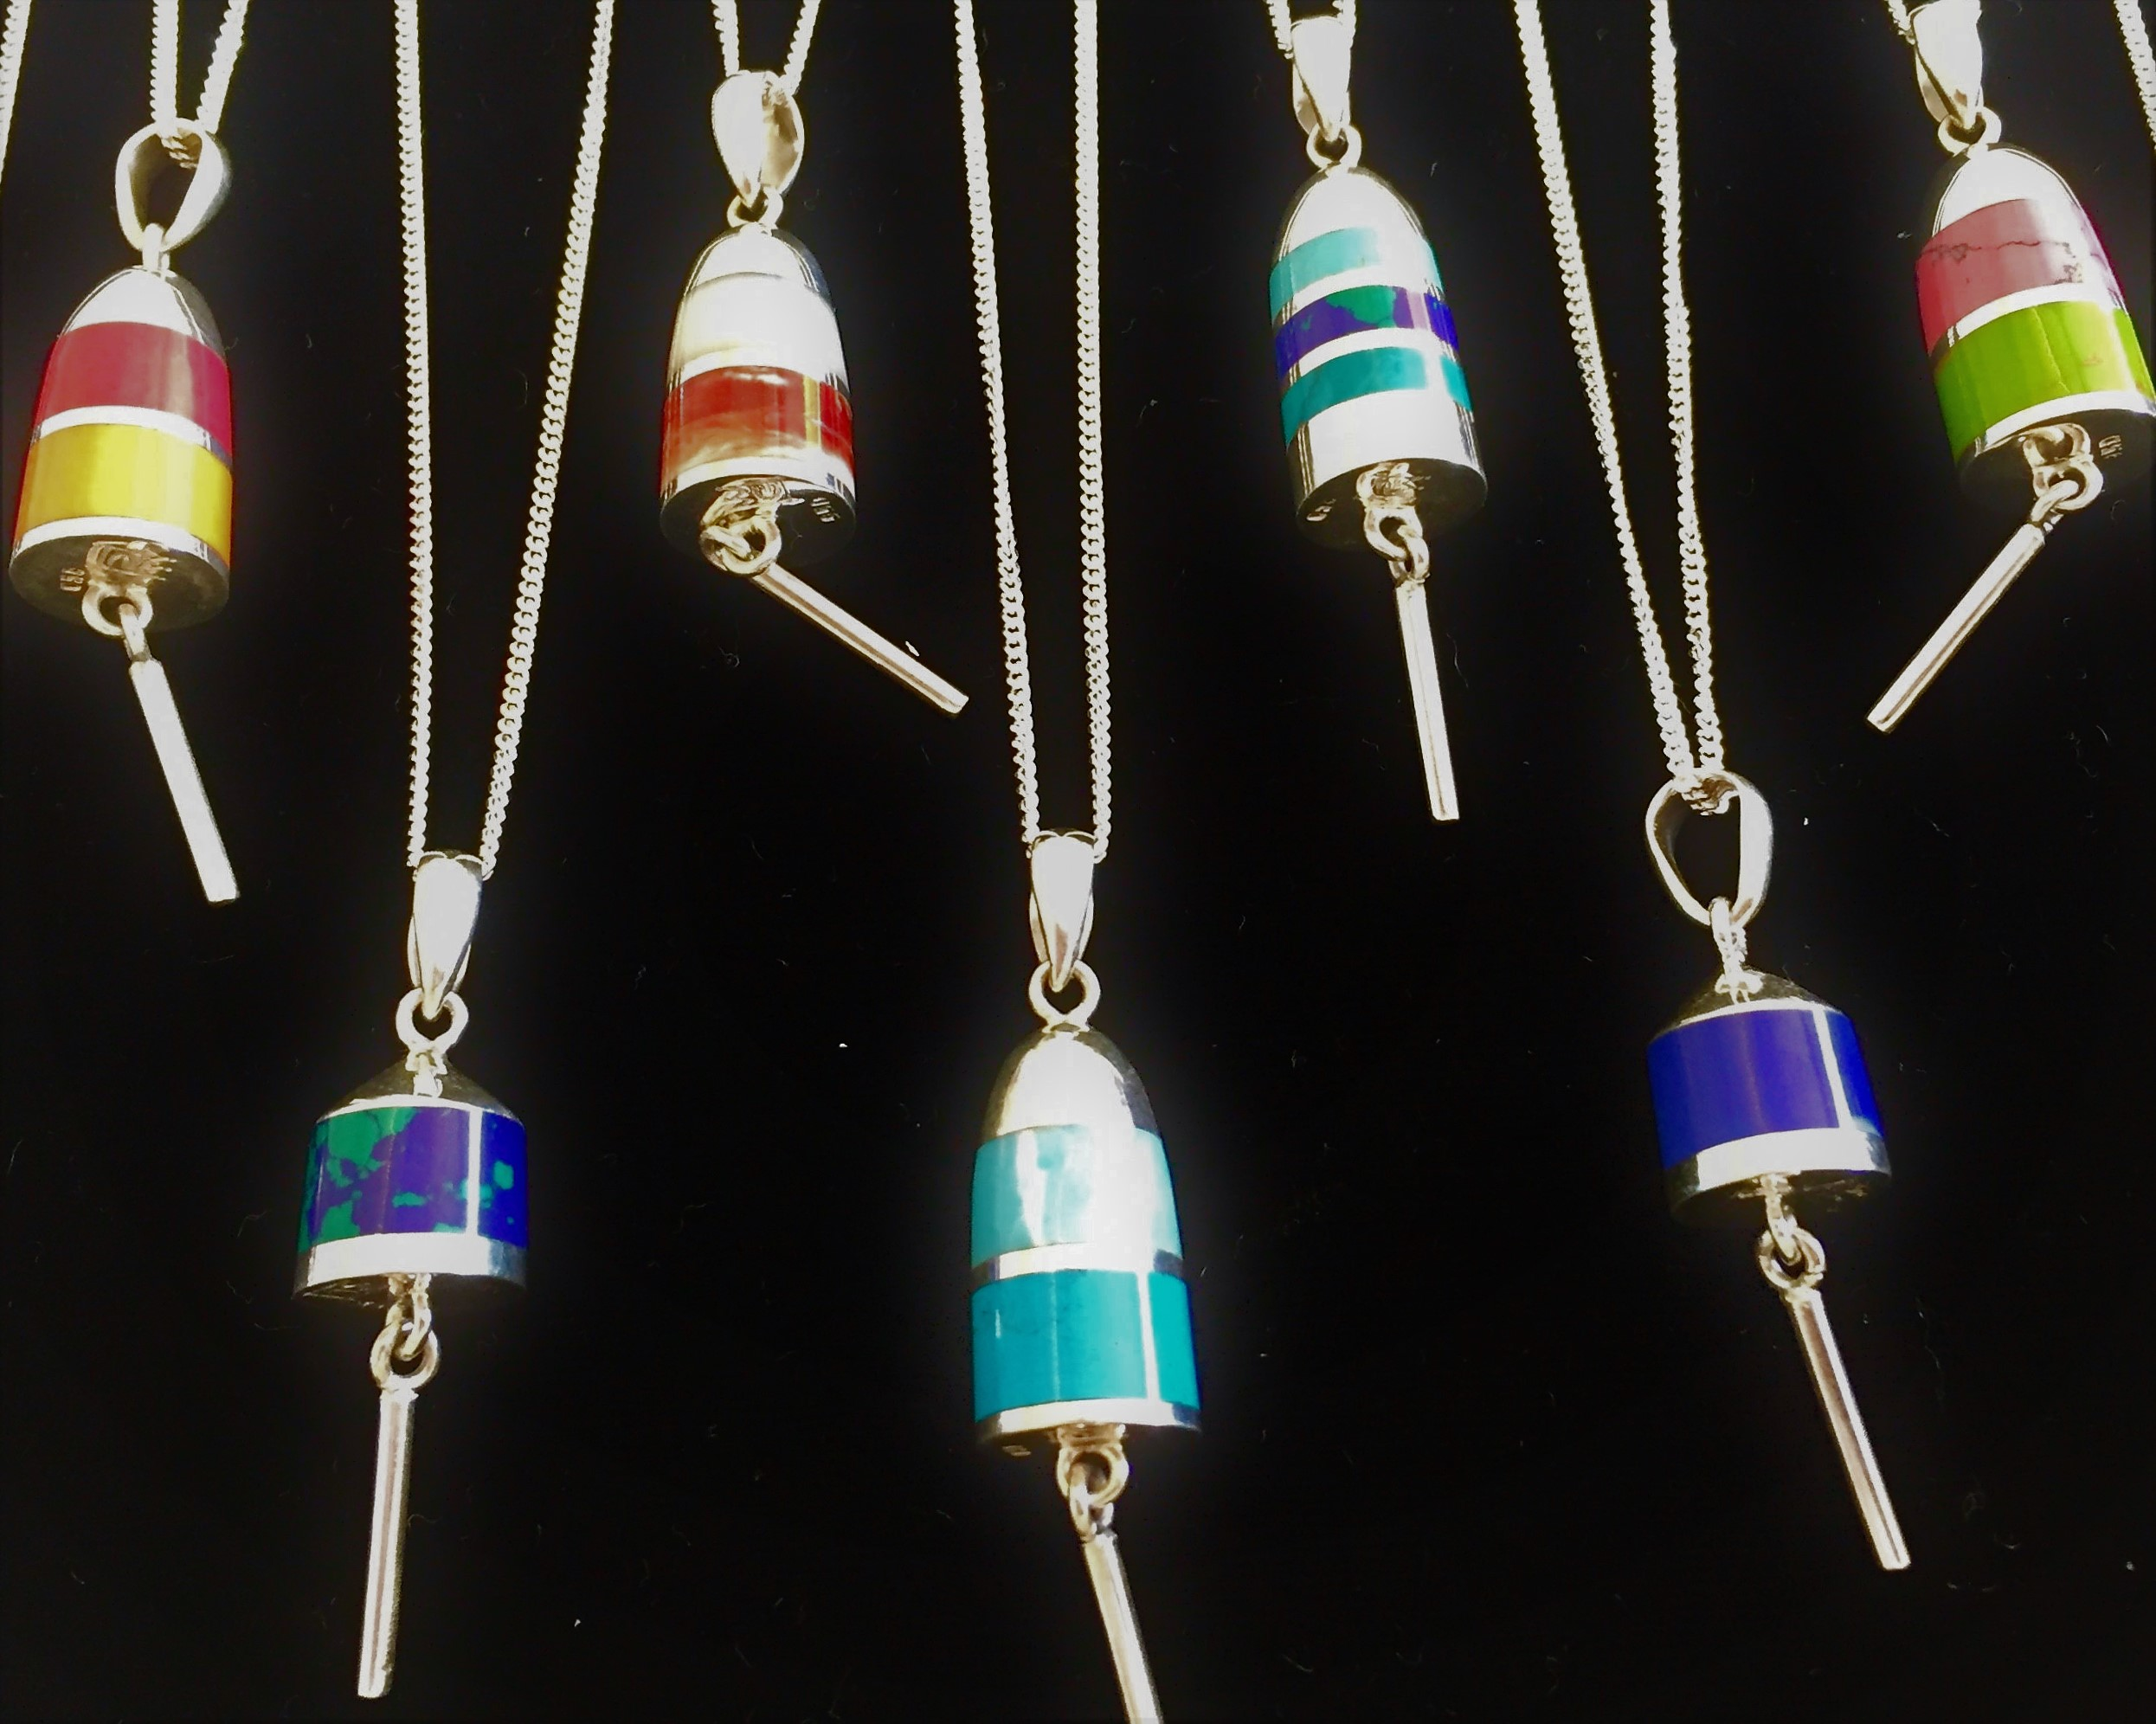 - Cesar Palma creates these beautiful buoy necklaces in silver, incorporating various stones into his work.  These lovely necklaces come to life when worn, with movements similar to that of an actual buoy in the water!